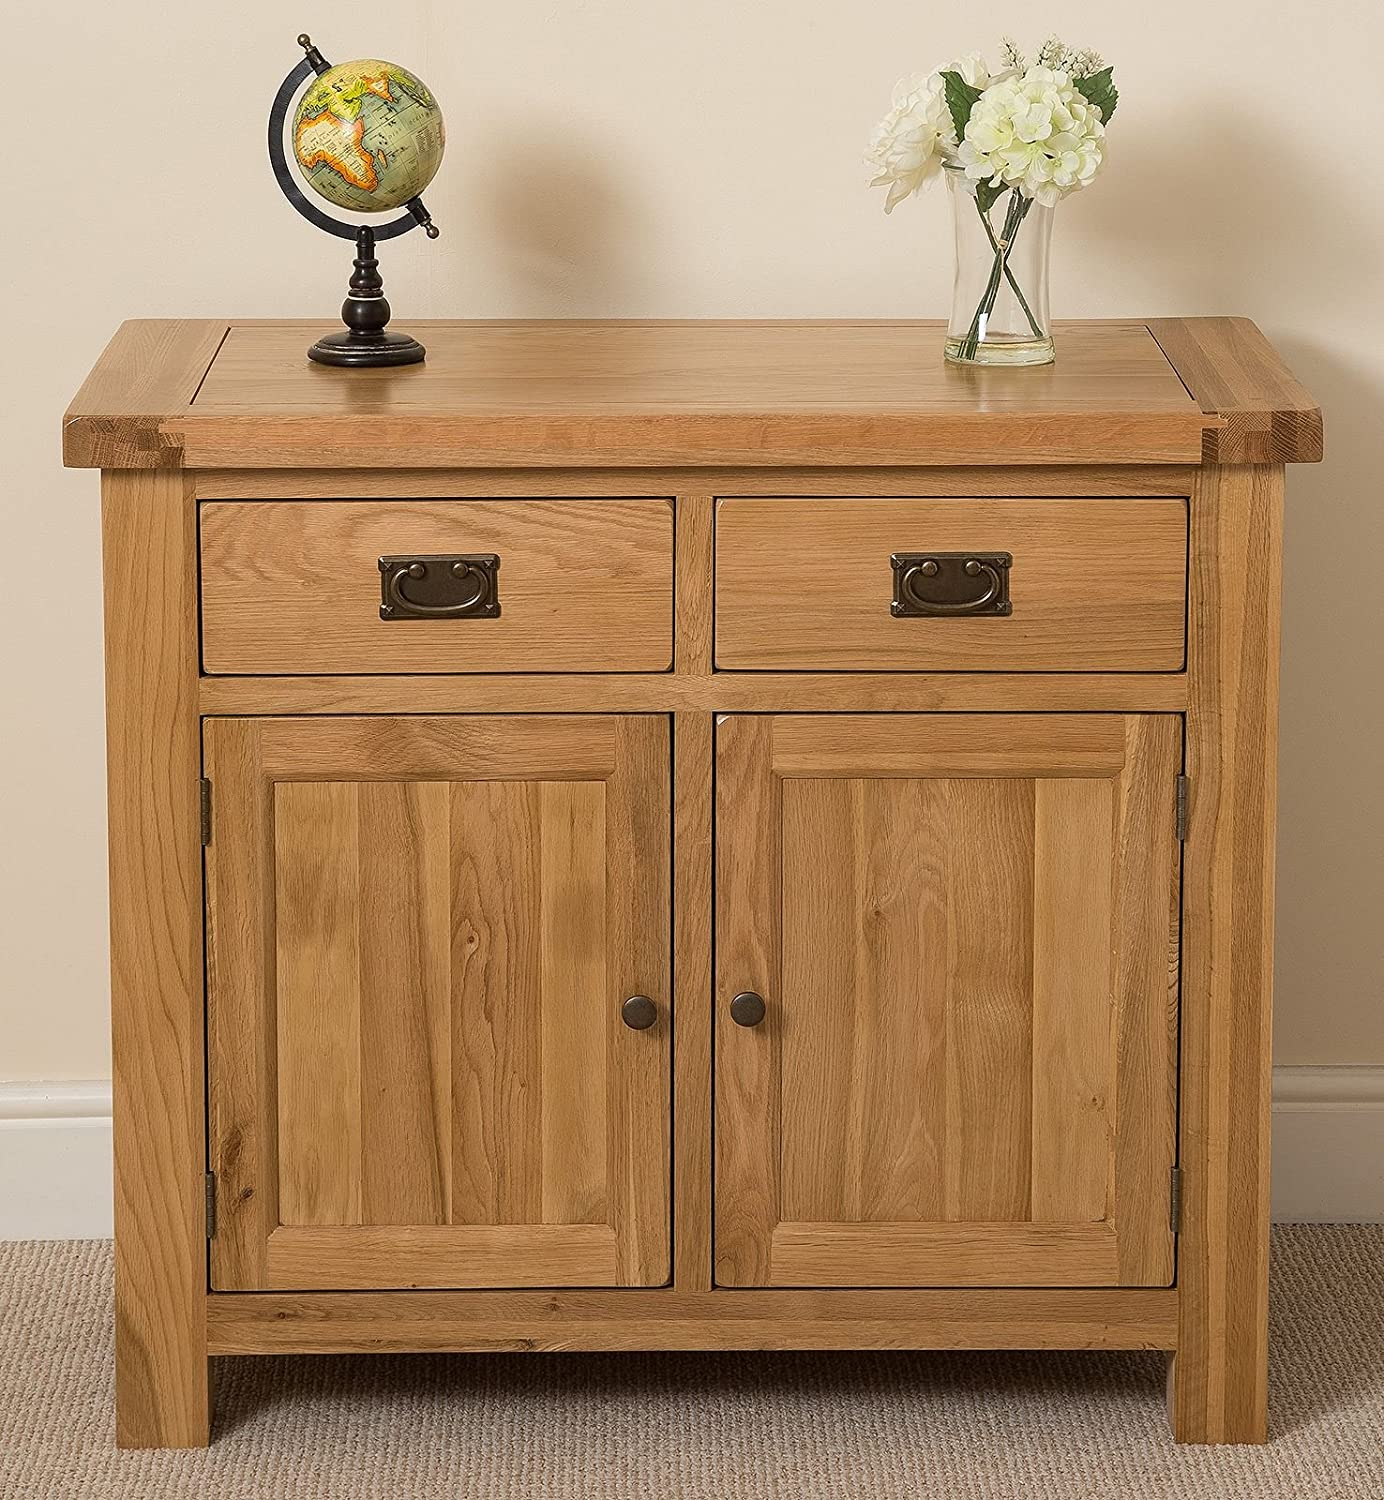 Cottage Solid Oak Small Sideboard Cabinet, 19 X 19 X 19 cm: Amazon ...